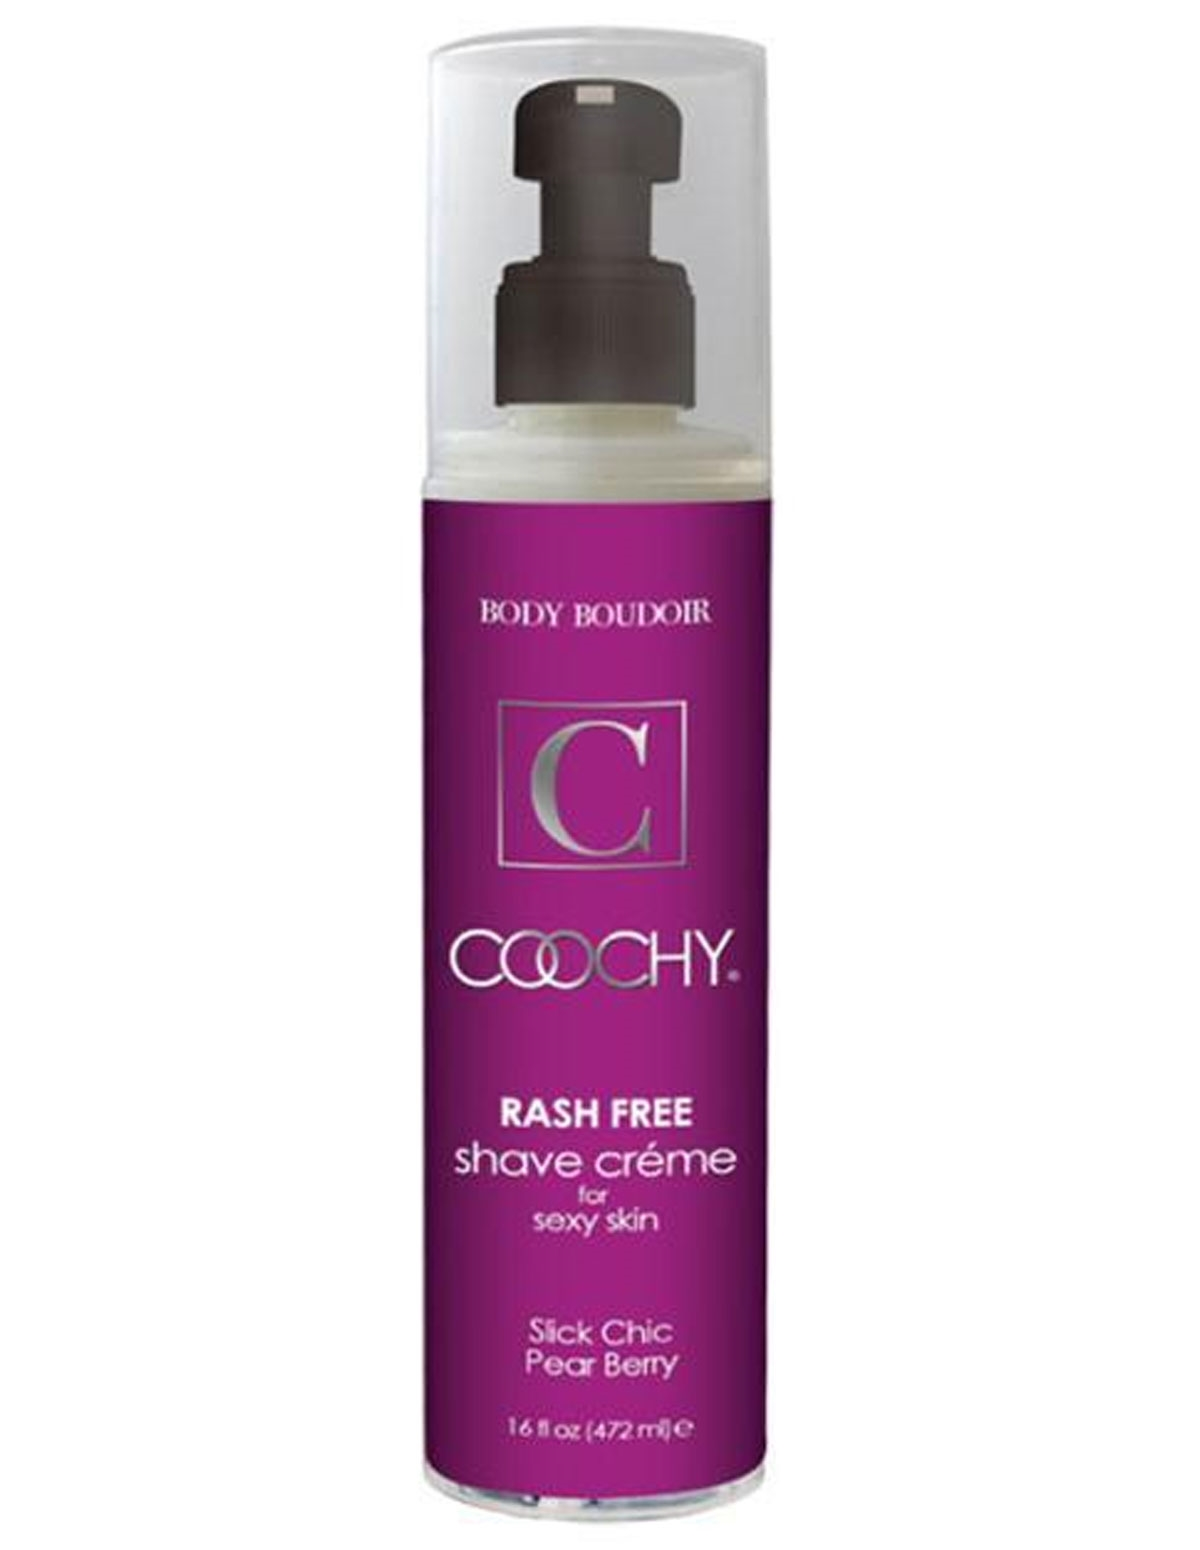 Coochy Pear Berry Shave Creme 16 Oz